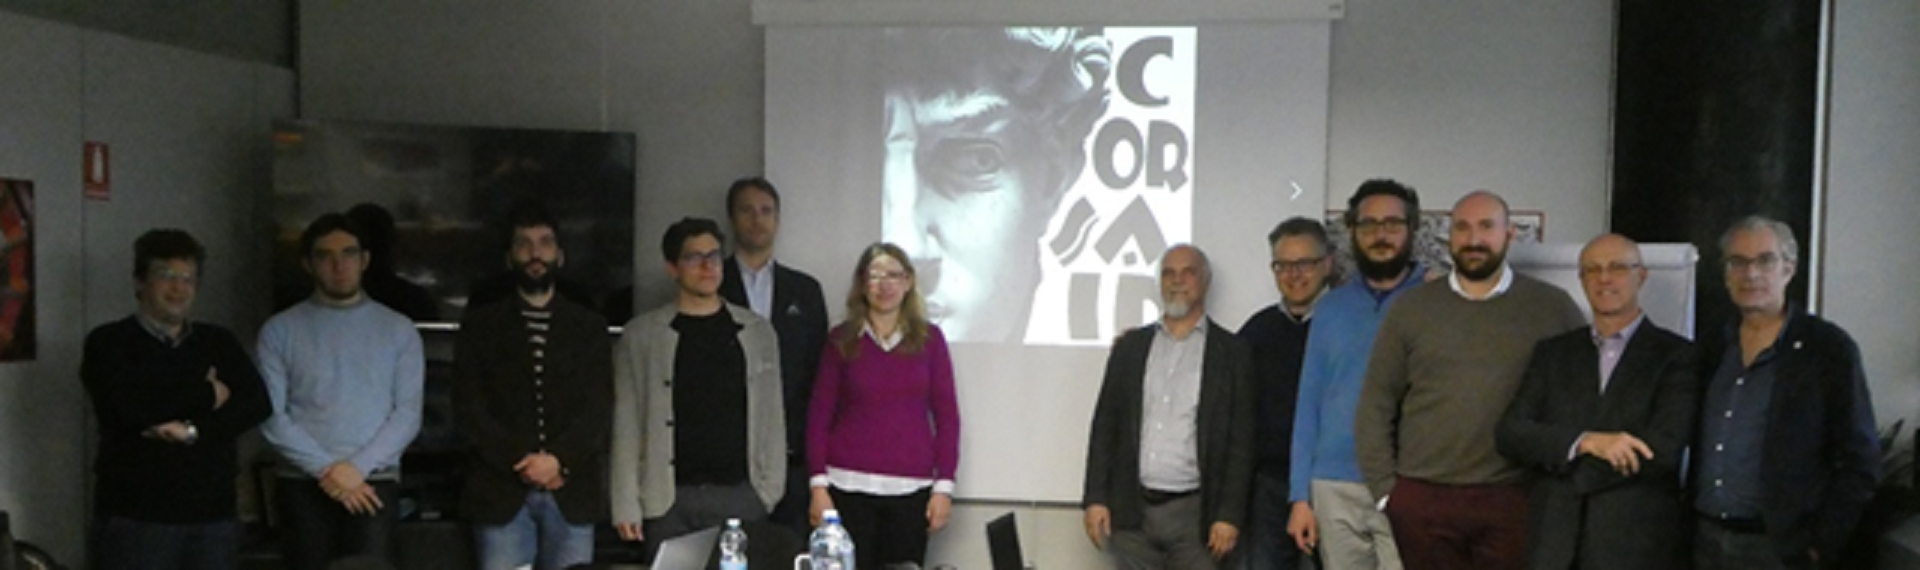 KickOff meeting del progetto CORSAIR